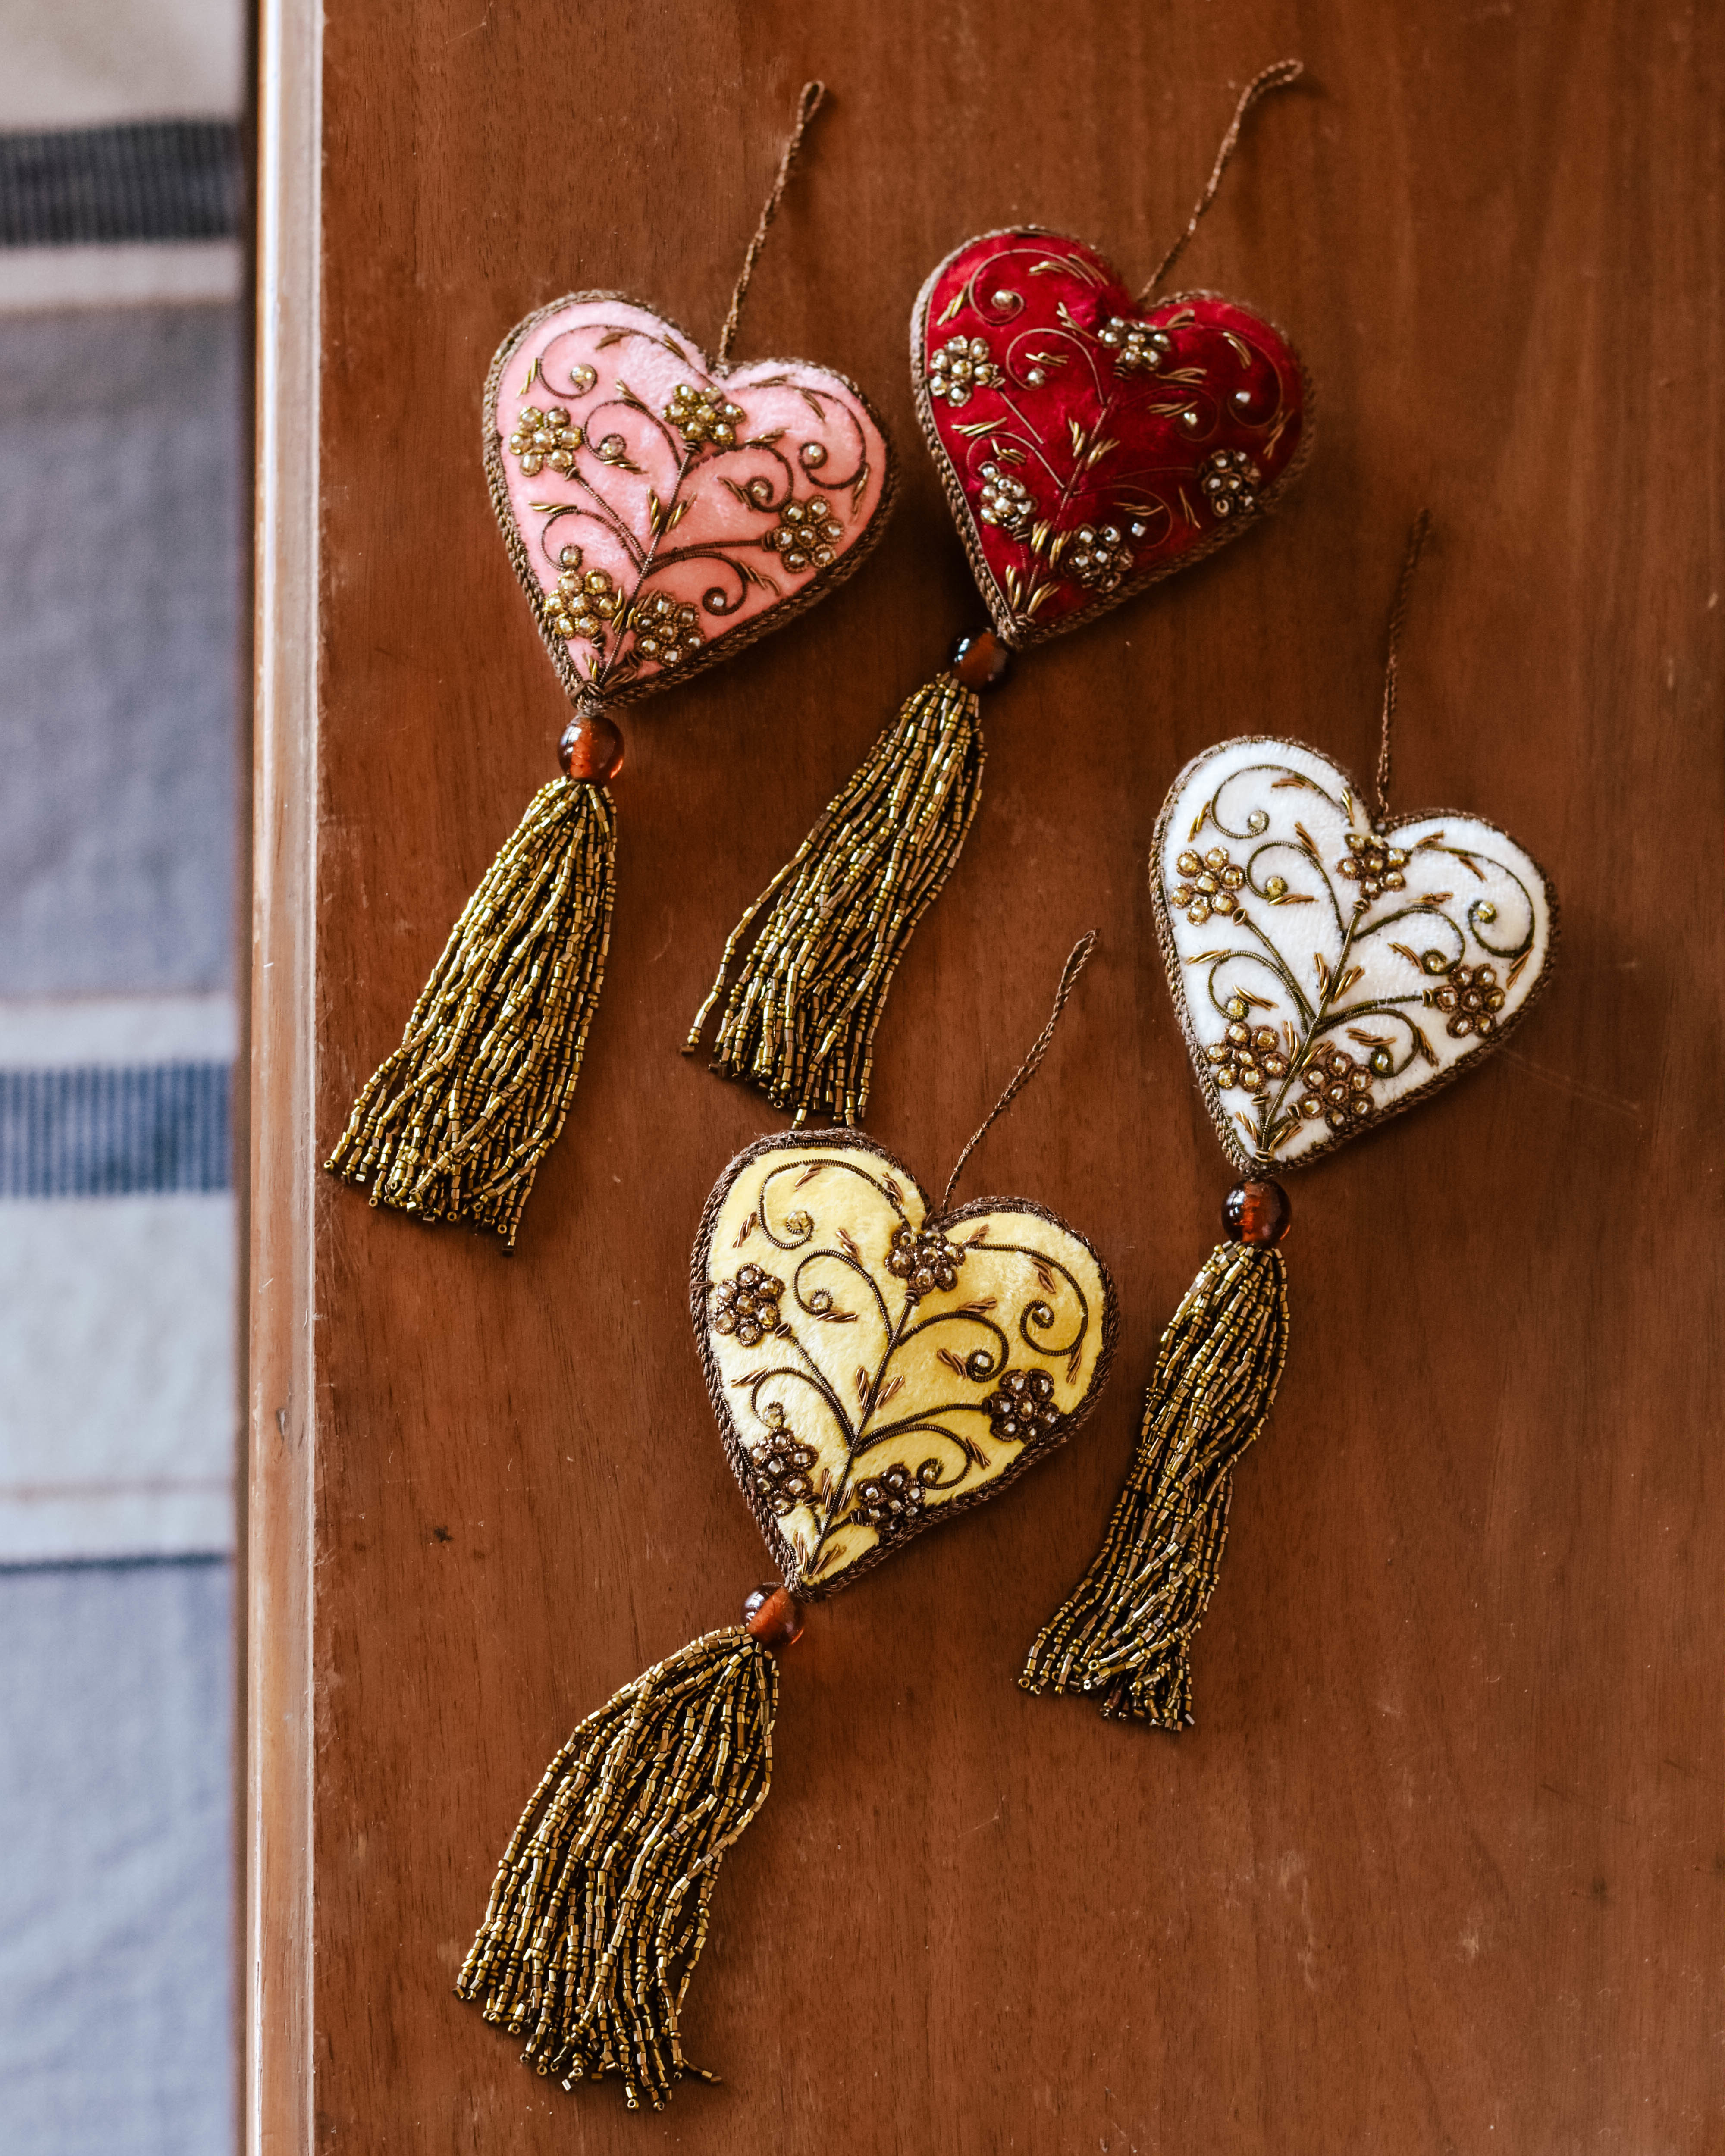 hand embroidered heart ornament xm1696a GPGM2ZEVTCE9E